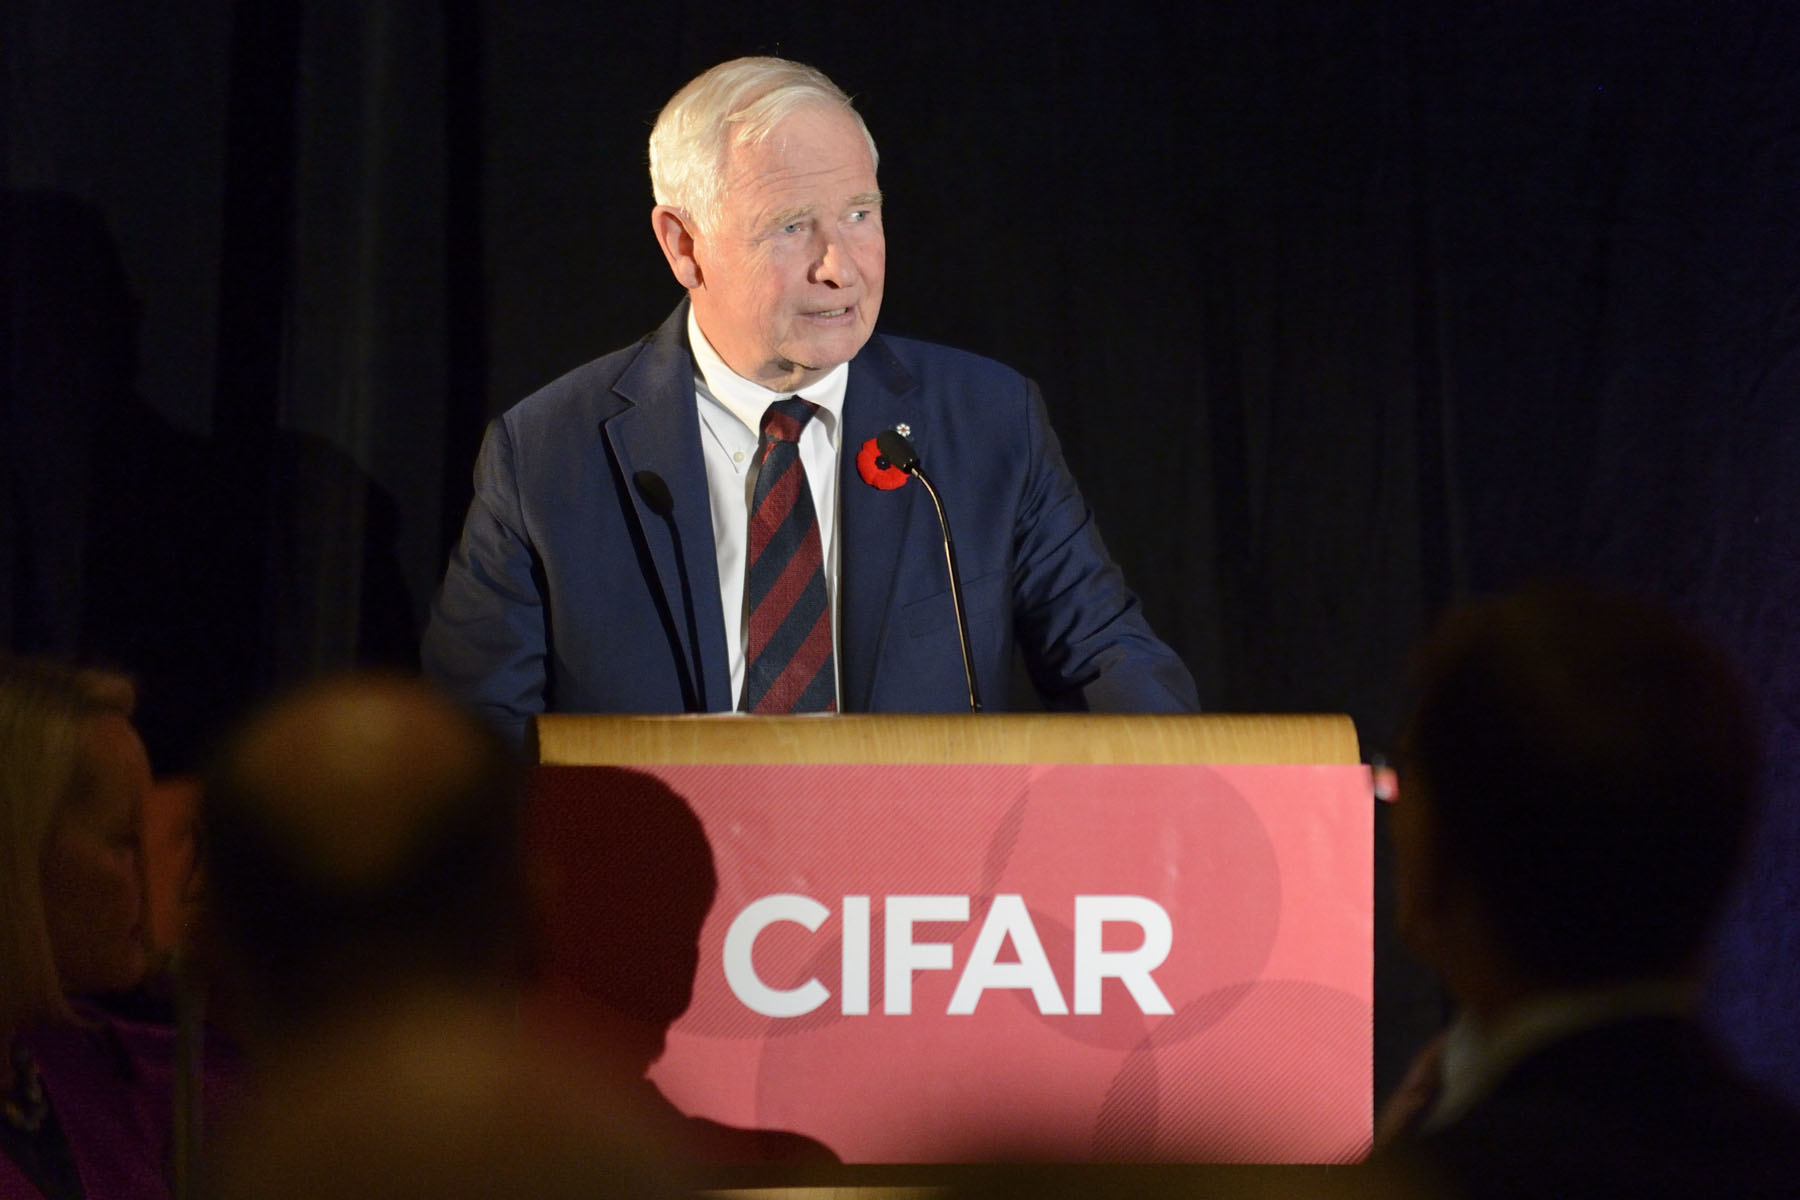 His Excellency then participated in the Canadian Institute for Advanced Research's (CIFAR) event Four Questions to Change the World. He delivered remarks on the importance of aiming high and collaborating internationally on research projects.